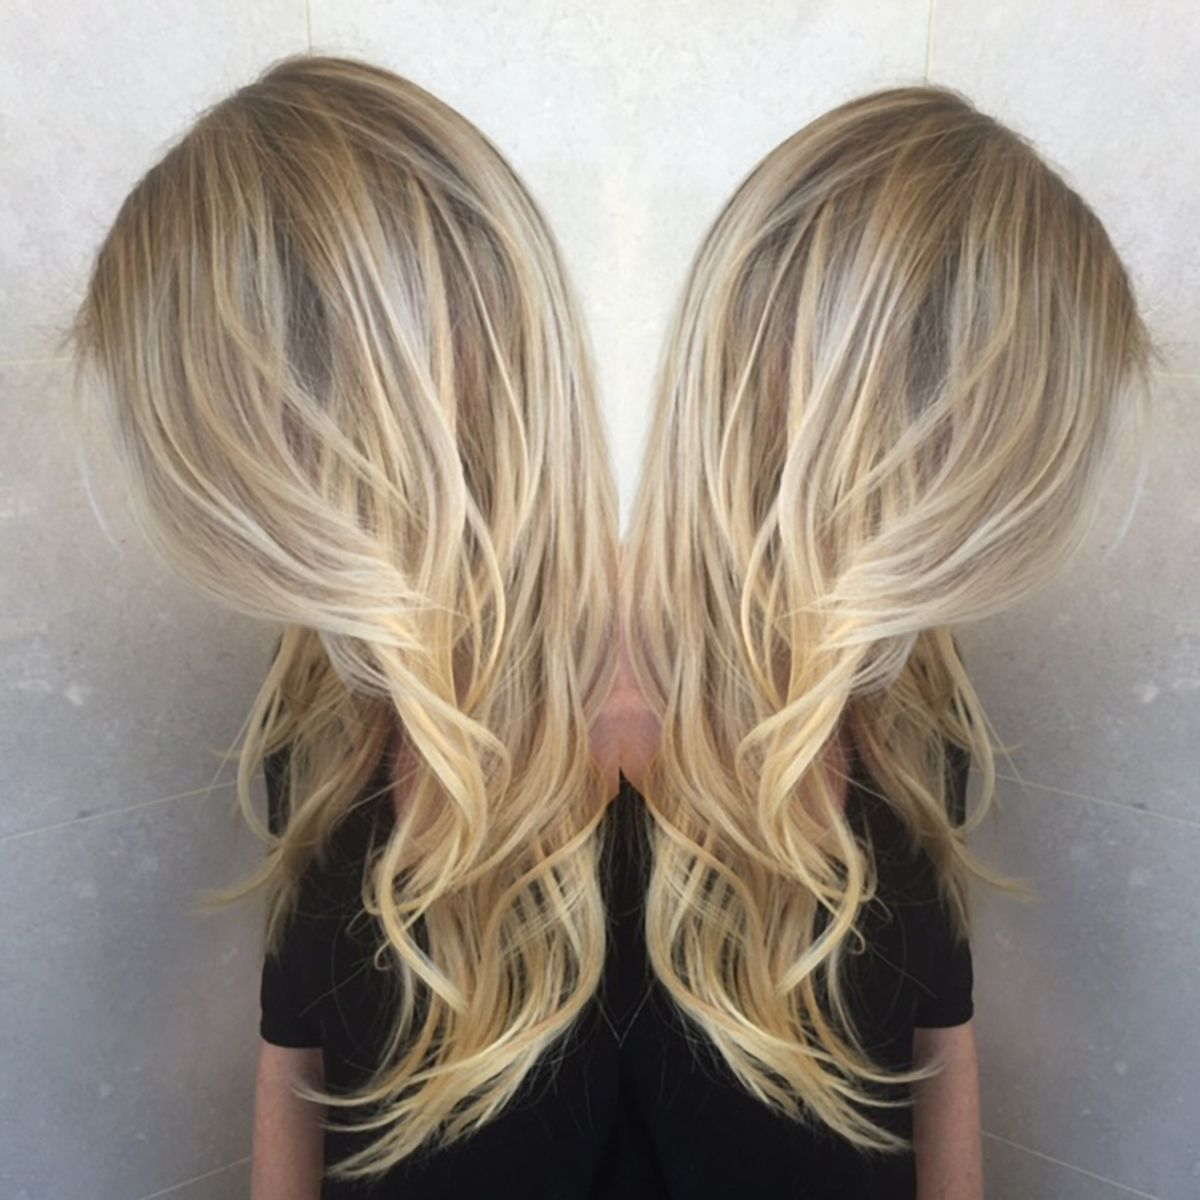 Pin By Justine Pipitone On My Style Pinterest Extensions Hair